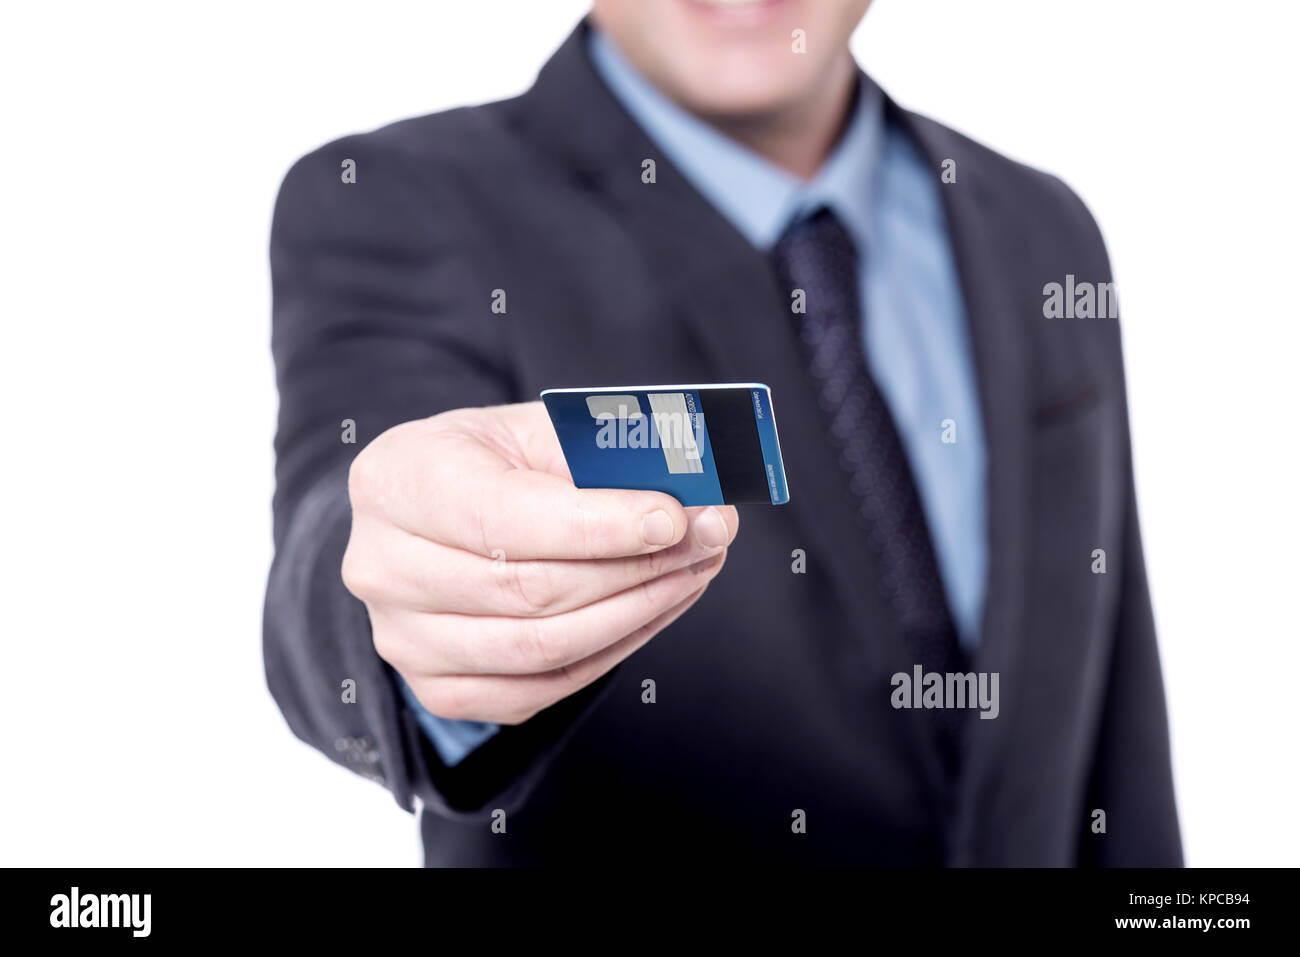 Focused image of businessman's hand with credit card - Stock Image